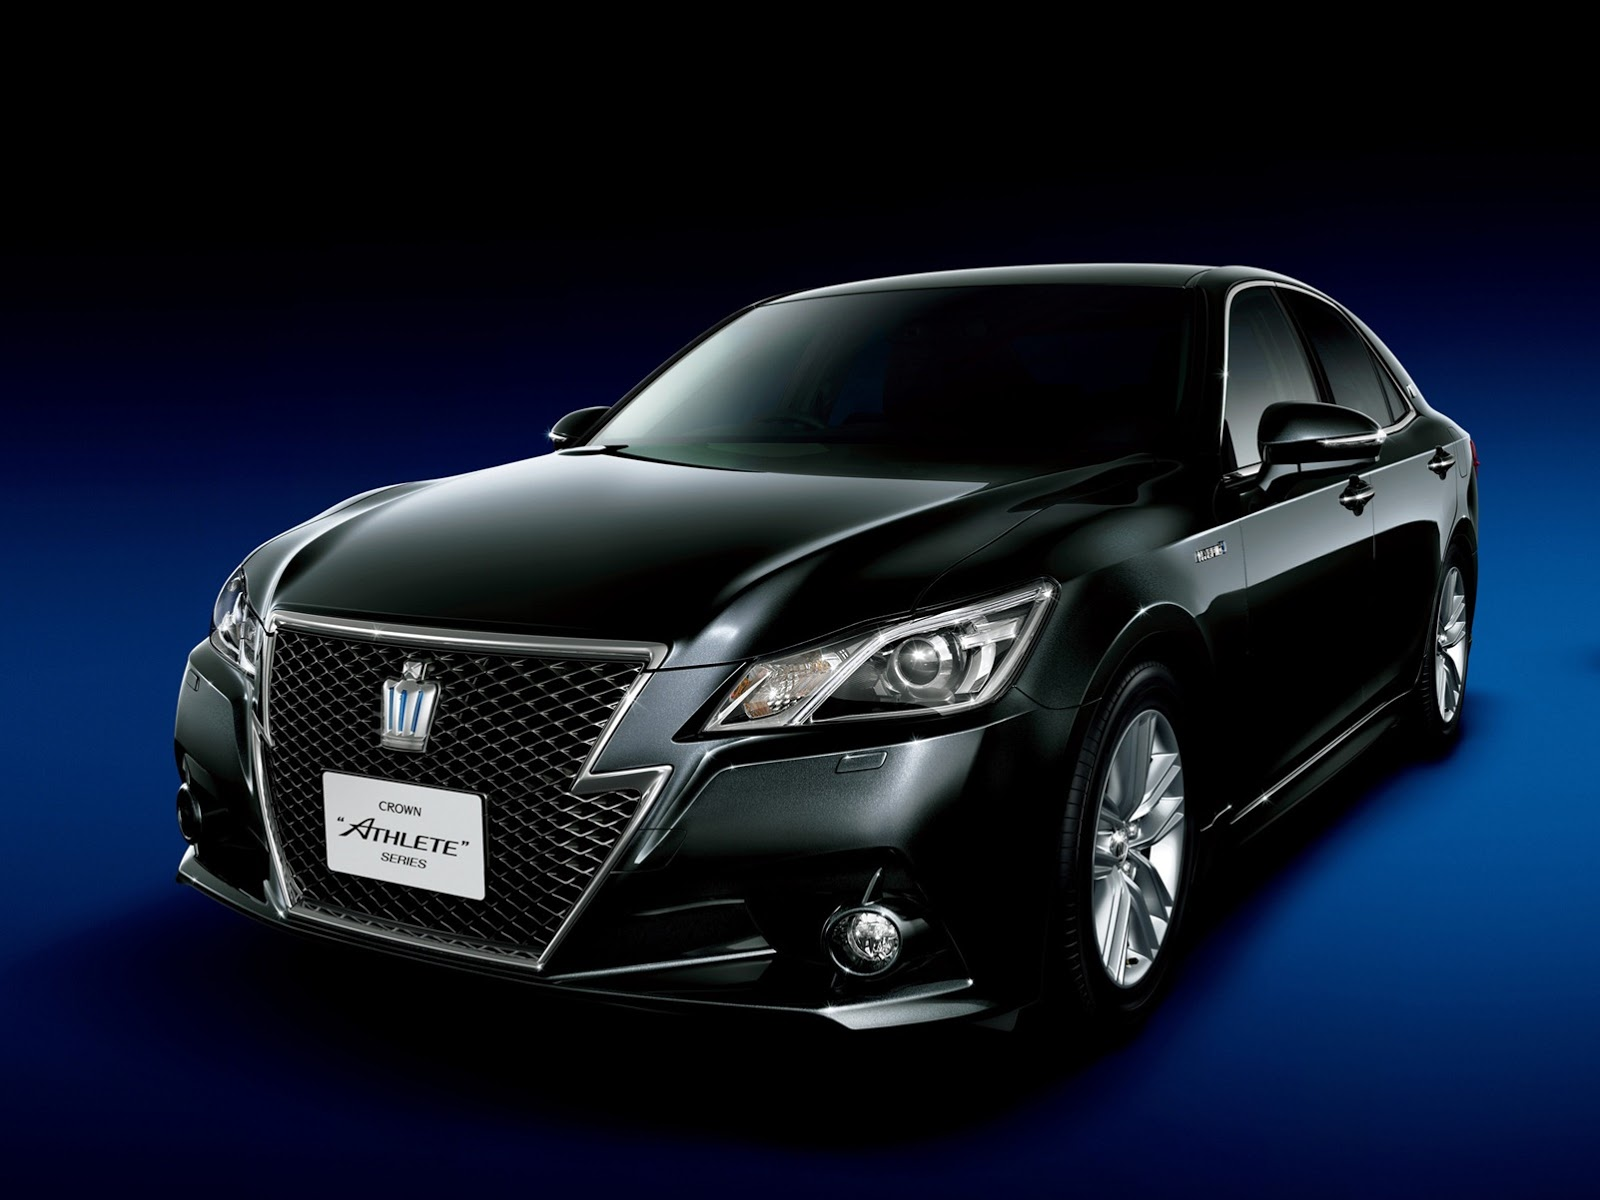 Future Cars 2018 Wallpapers 2013 Toyota Crown Royal And Athlete Revealed Autoevolution